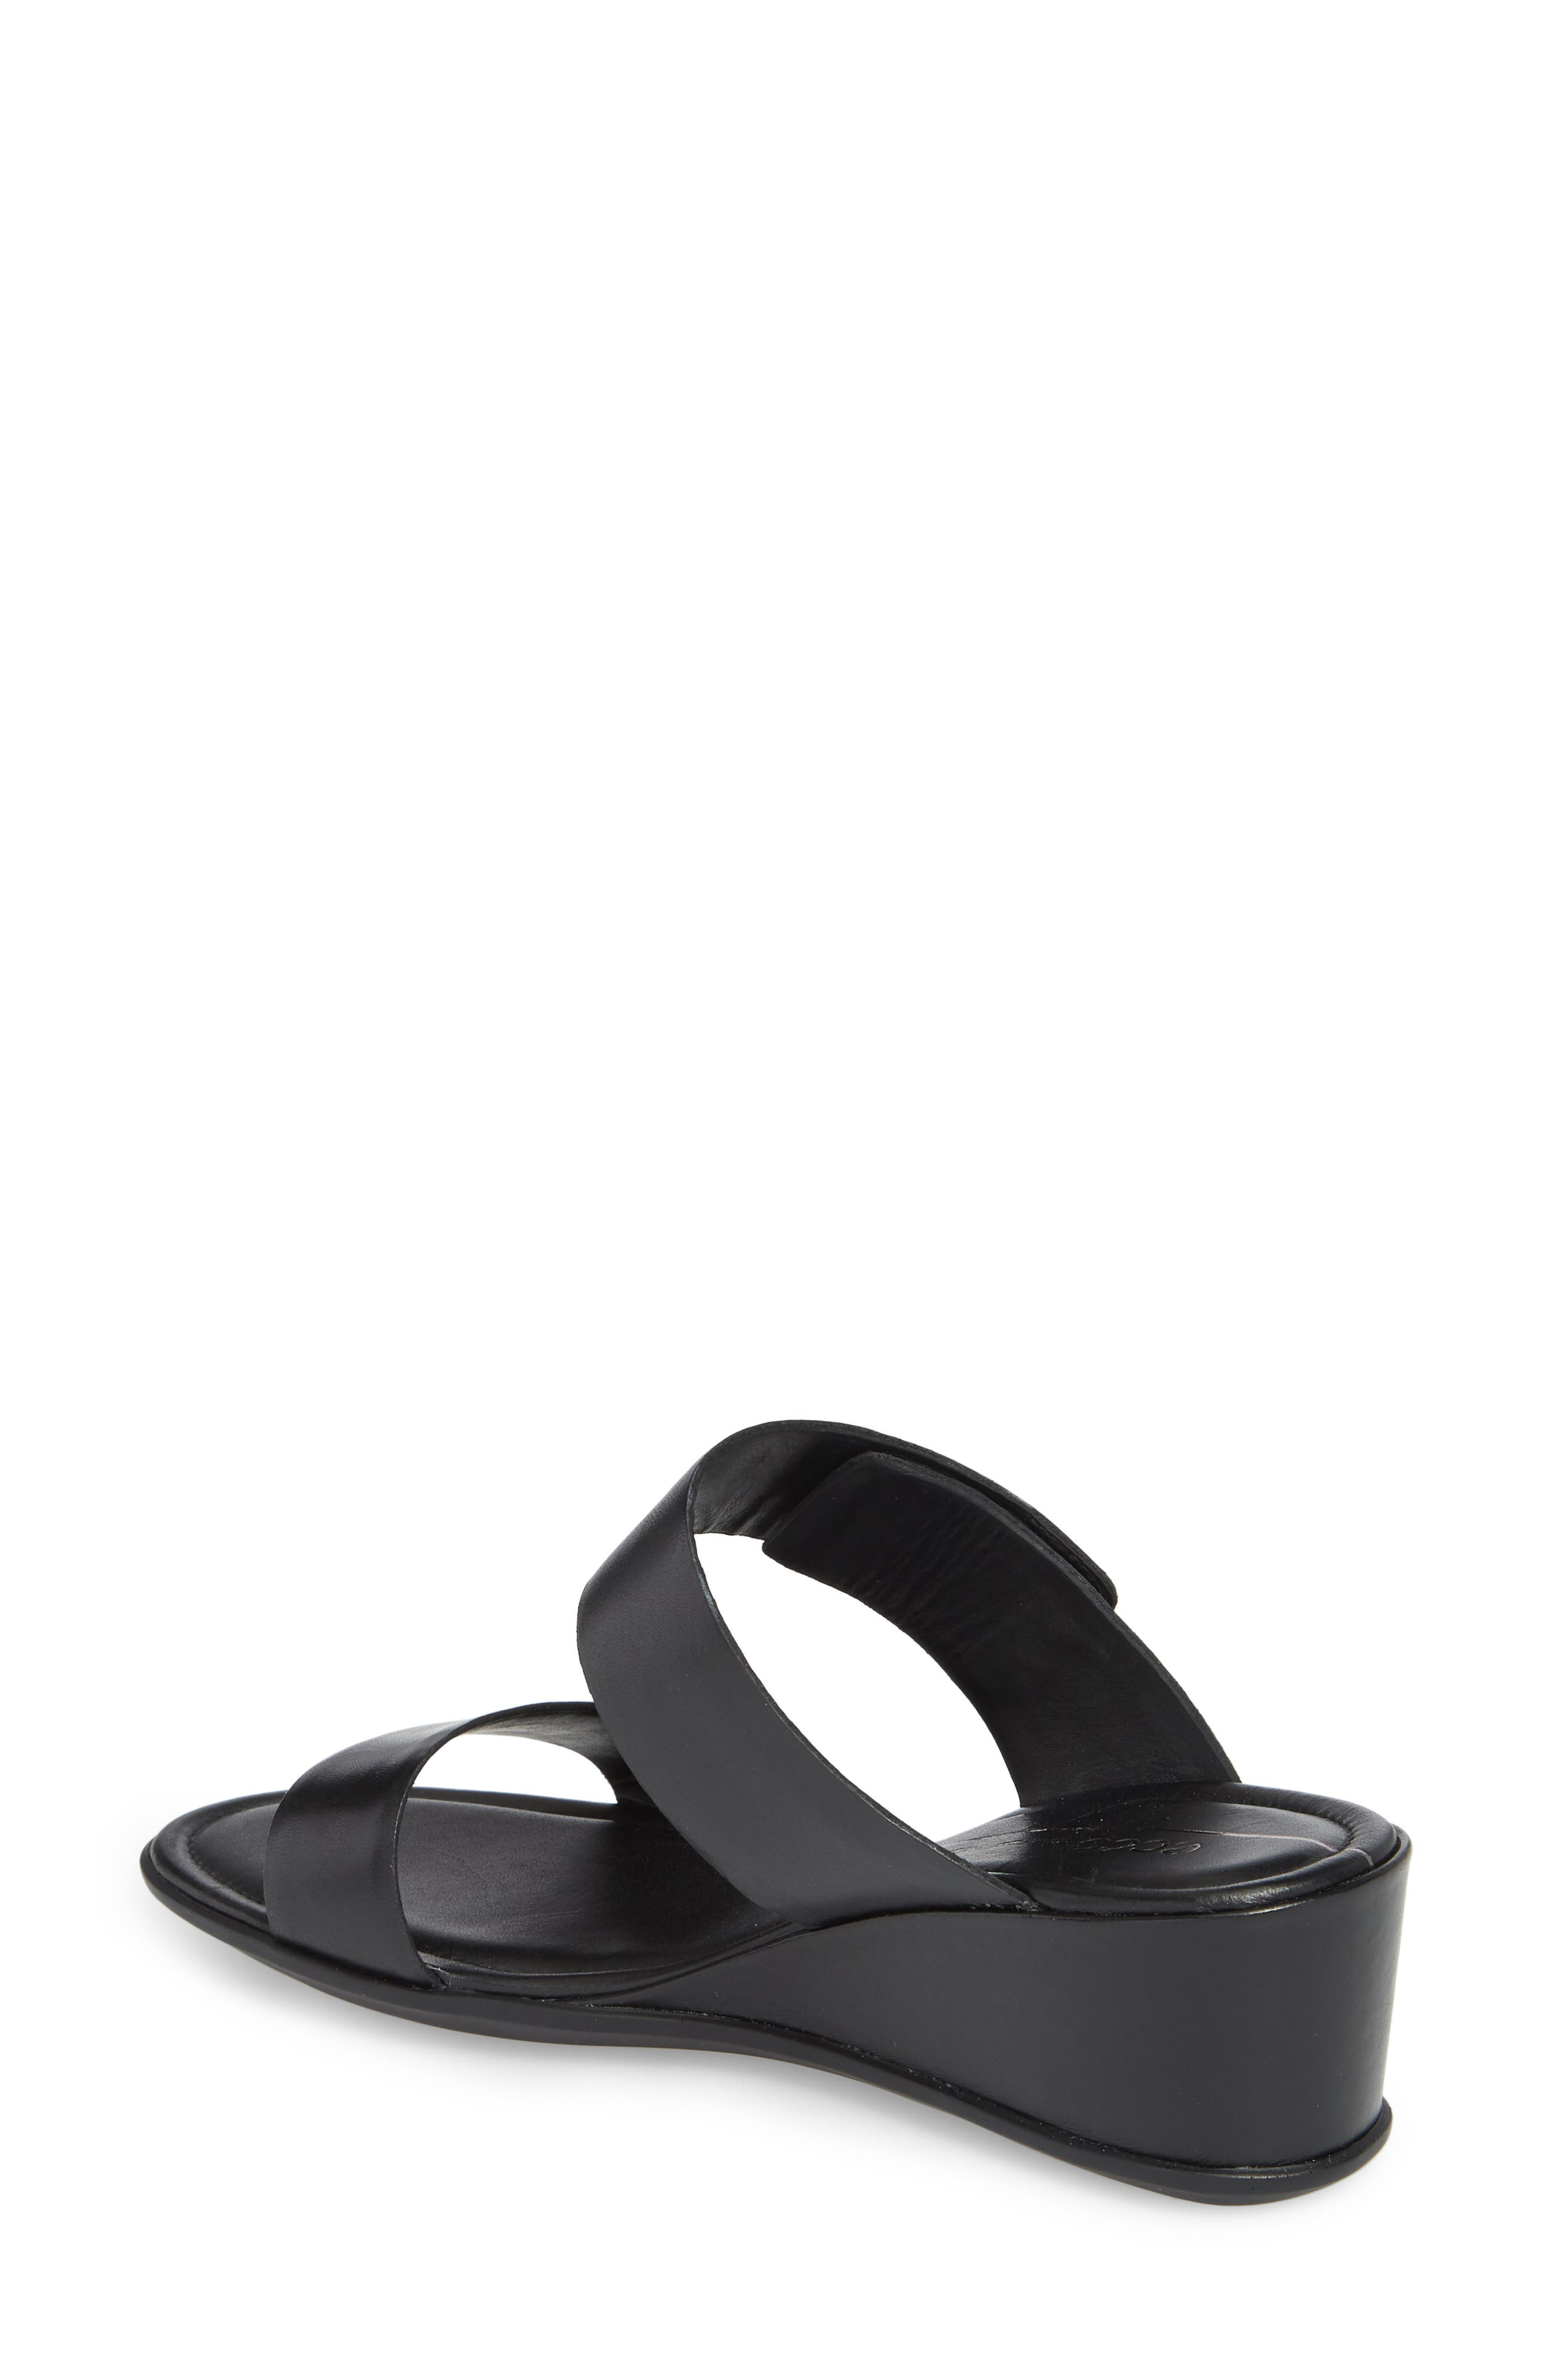 Shape 35 Wedge Sandal,                             Alternate thumbnail 2, color,                             001